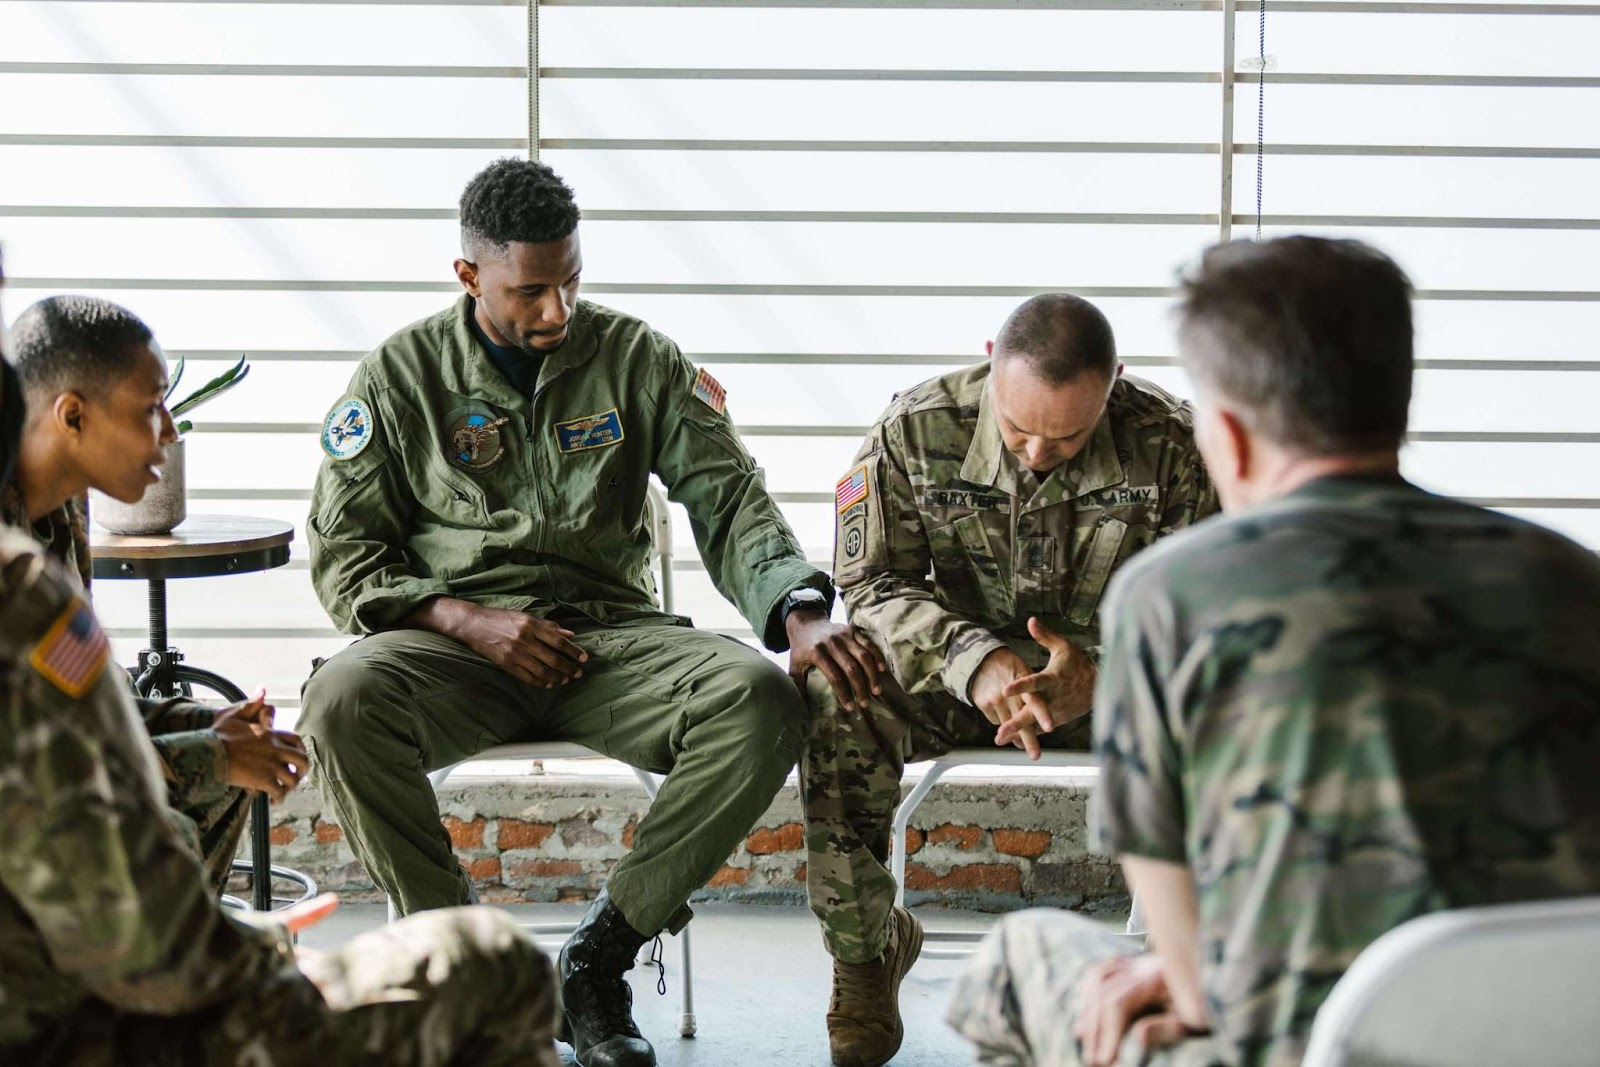 A group of military members, possibly veterans, in group therapy